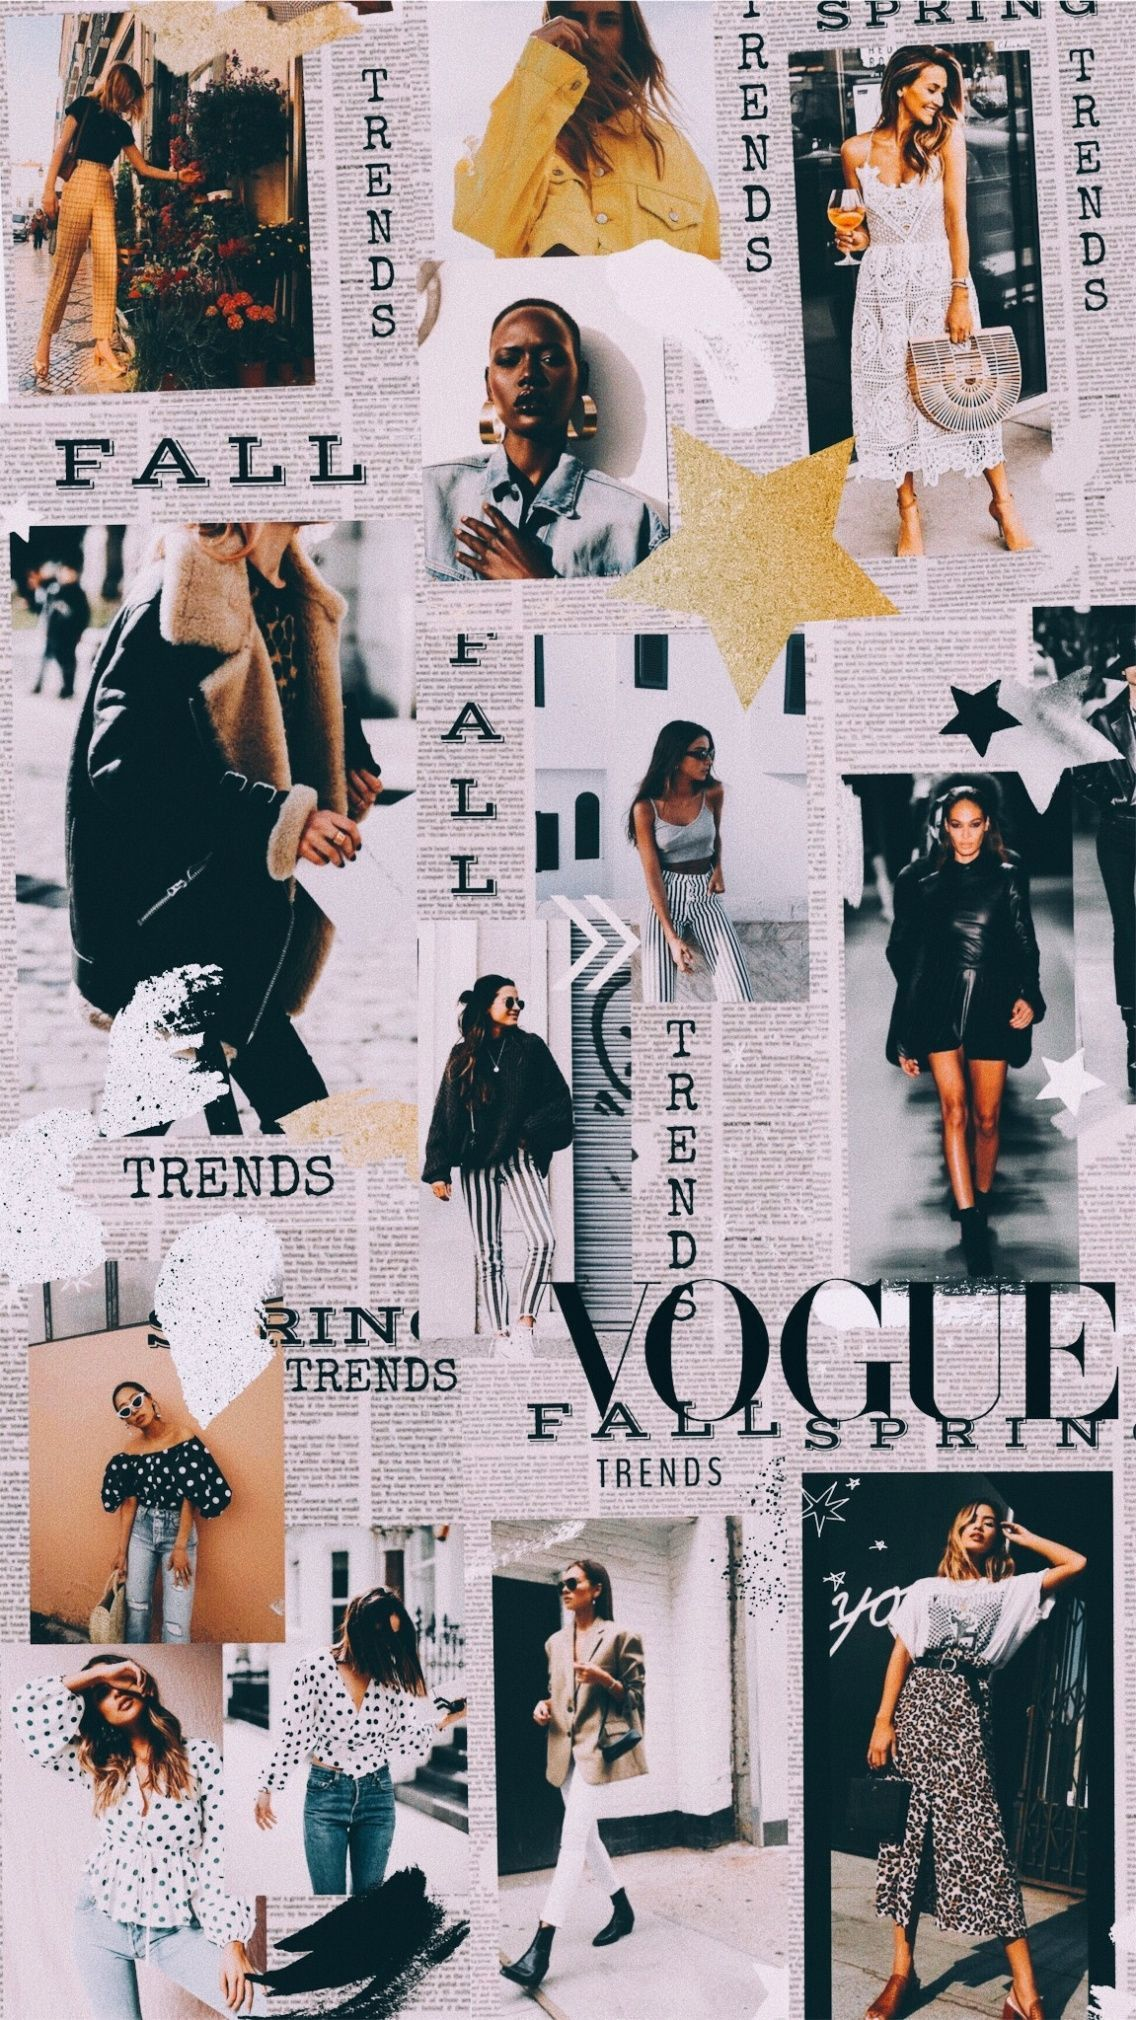 Pin By Anuja On Love Aesthetics In 2020 Vogue Wallpaper Fashion Wallpaper Collage Background